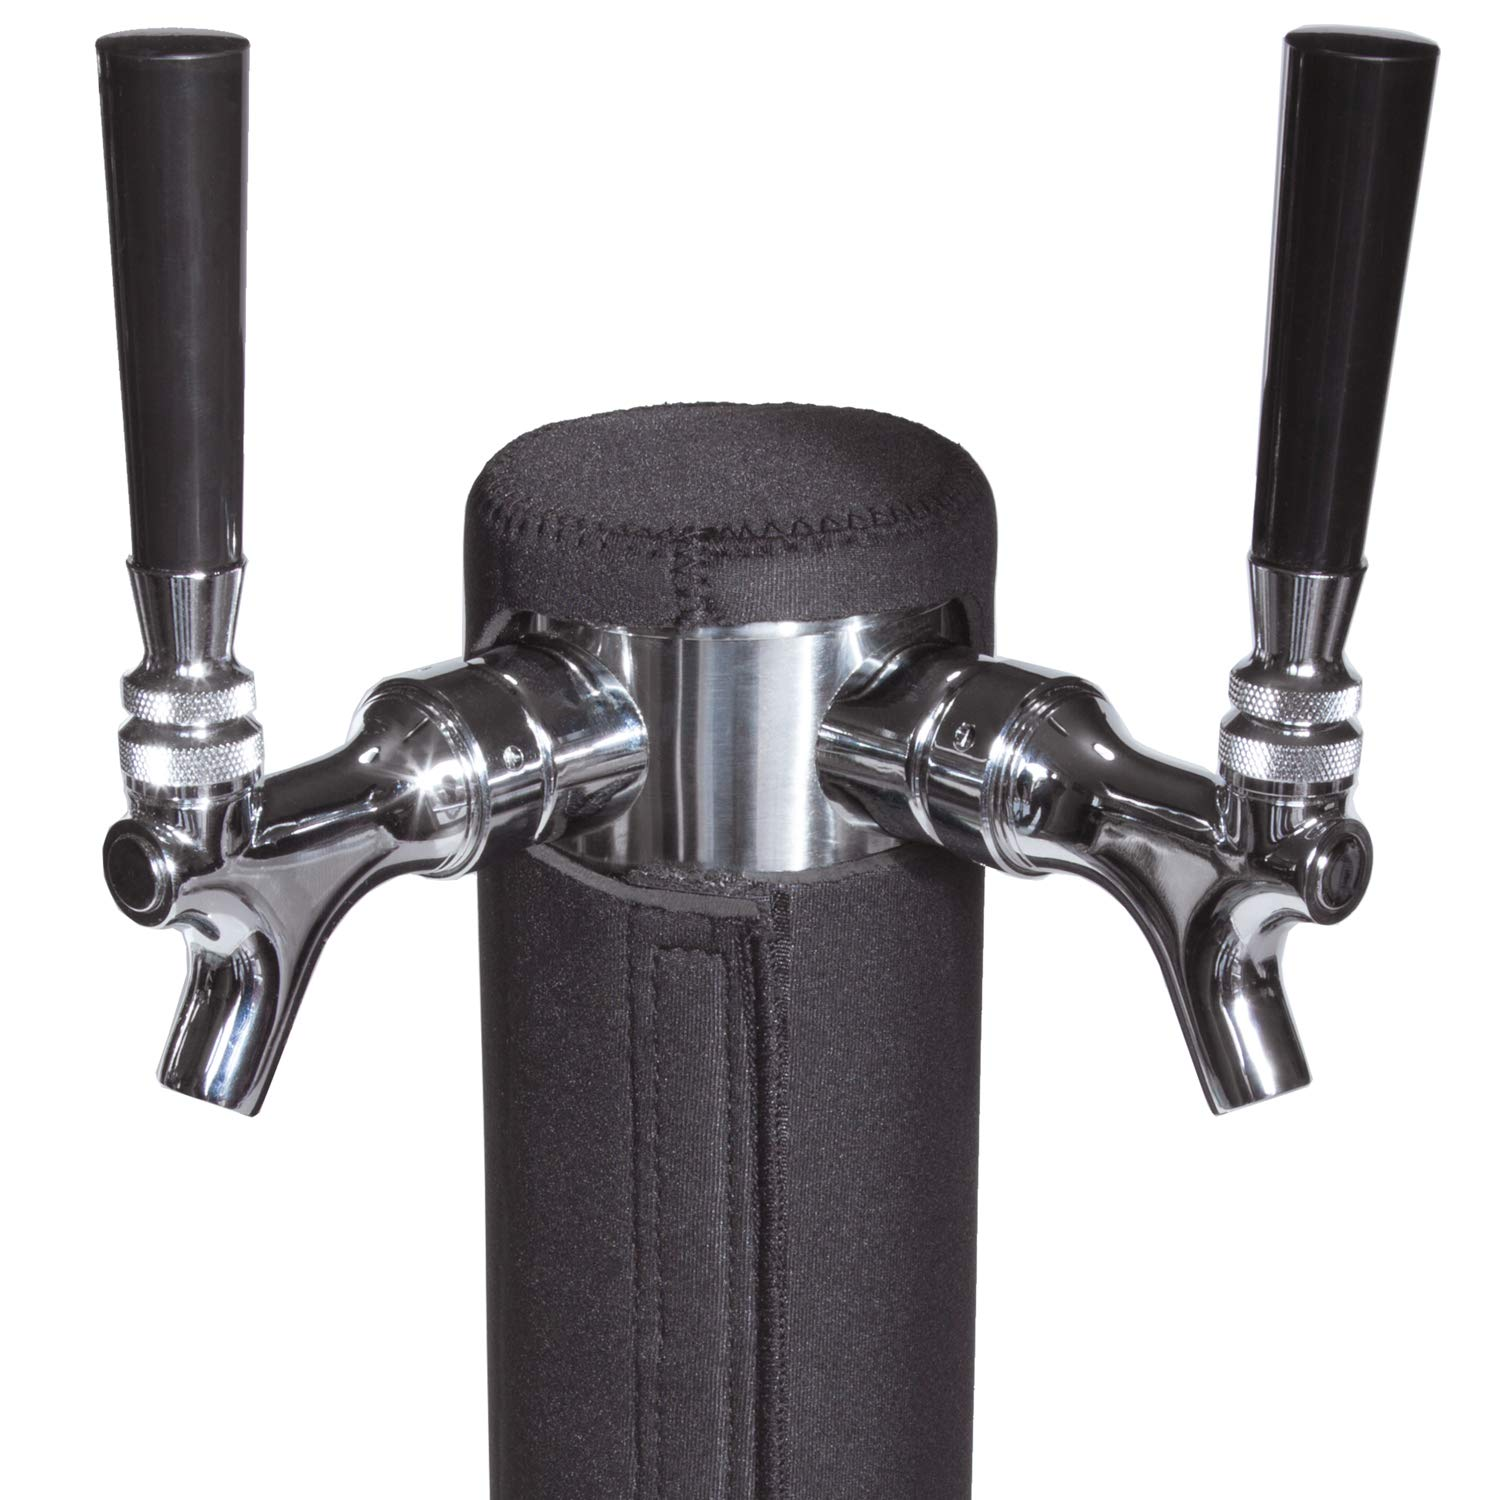 Kegerator Tower Cooler for Beer Tower - Neoprene Design - Perfect Fit for Kegerator Tap Tower - Easy to Use Beer Tower Cooler Accessory (3.0'' Diameter Beer Tower)